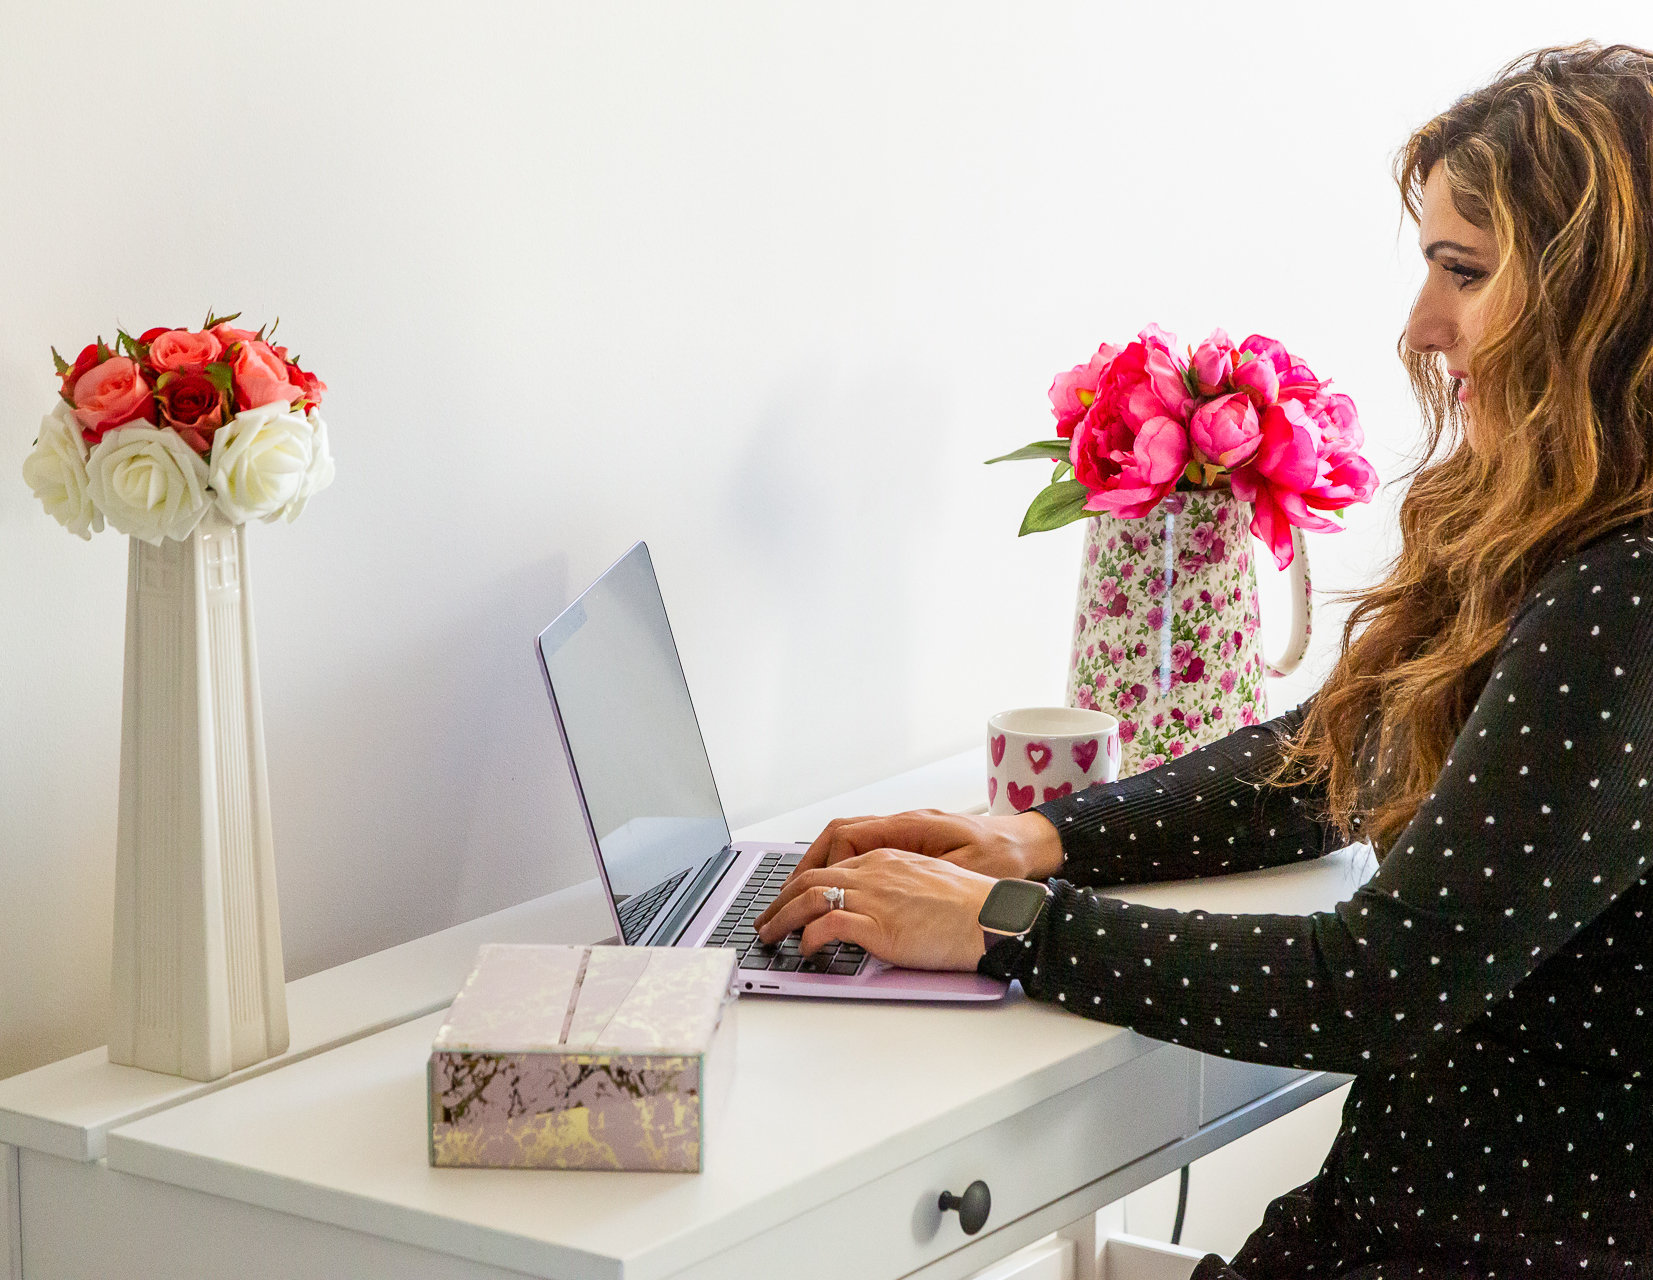 Picture of Vicki Broadbent sat at a laptop on a white desk with two vases of flowers